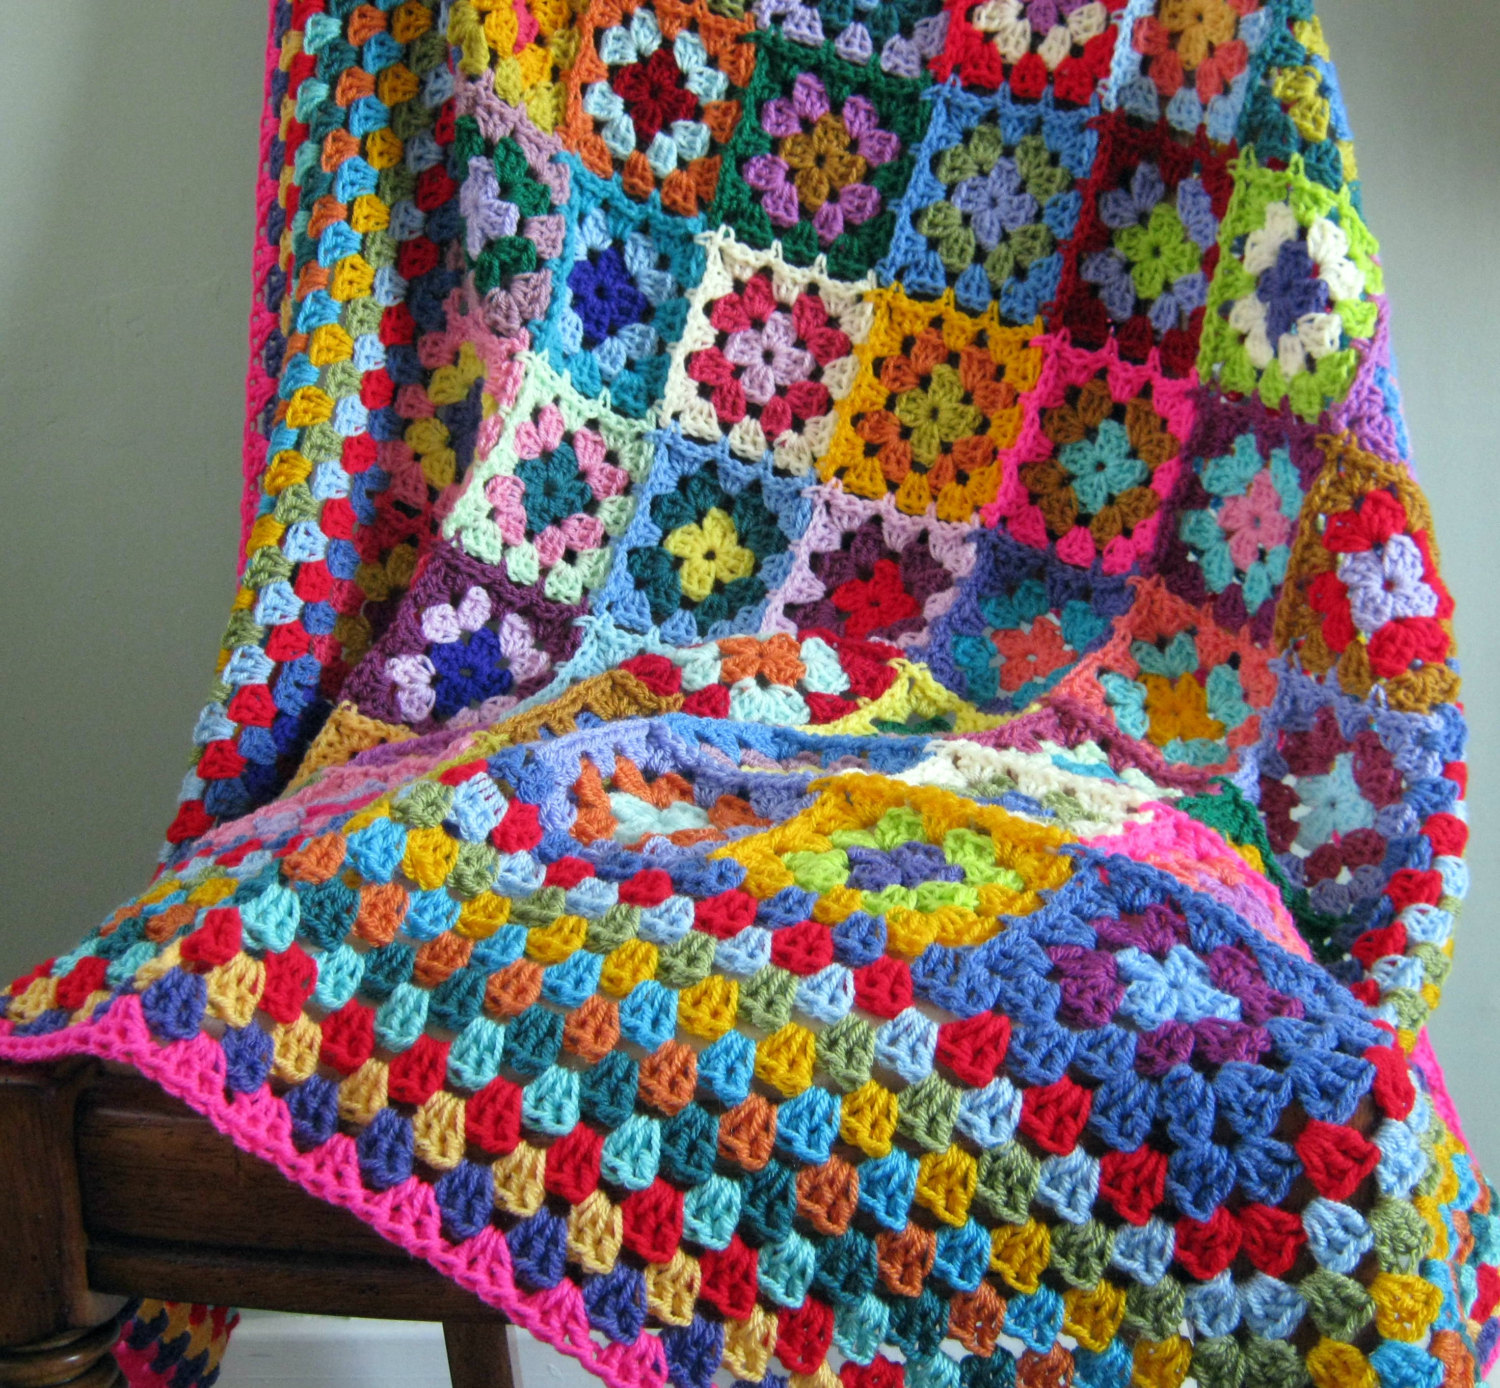 Granny Square Crochet Blanket from The Sunroom UK on Etsy